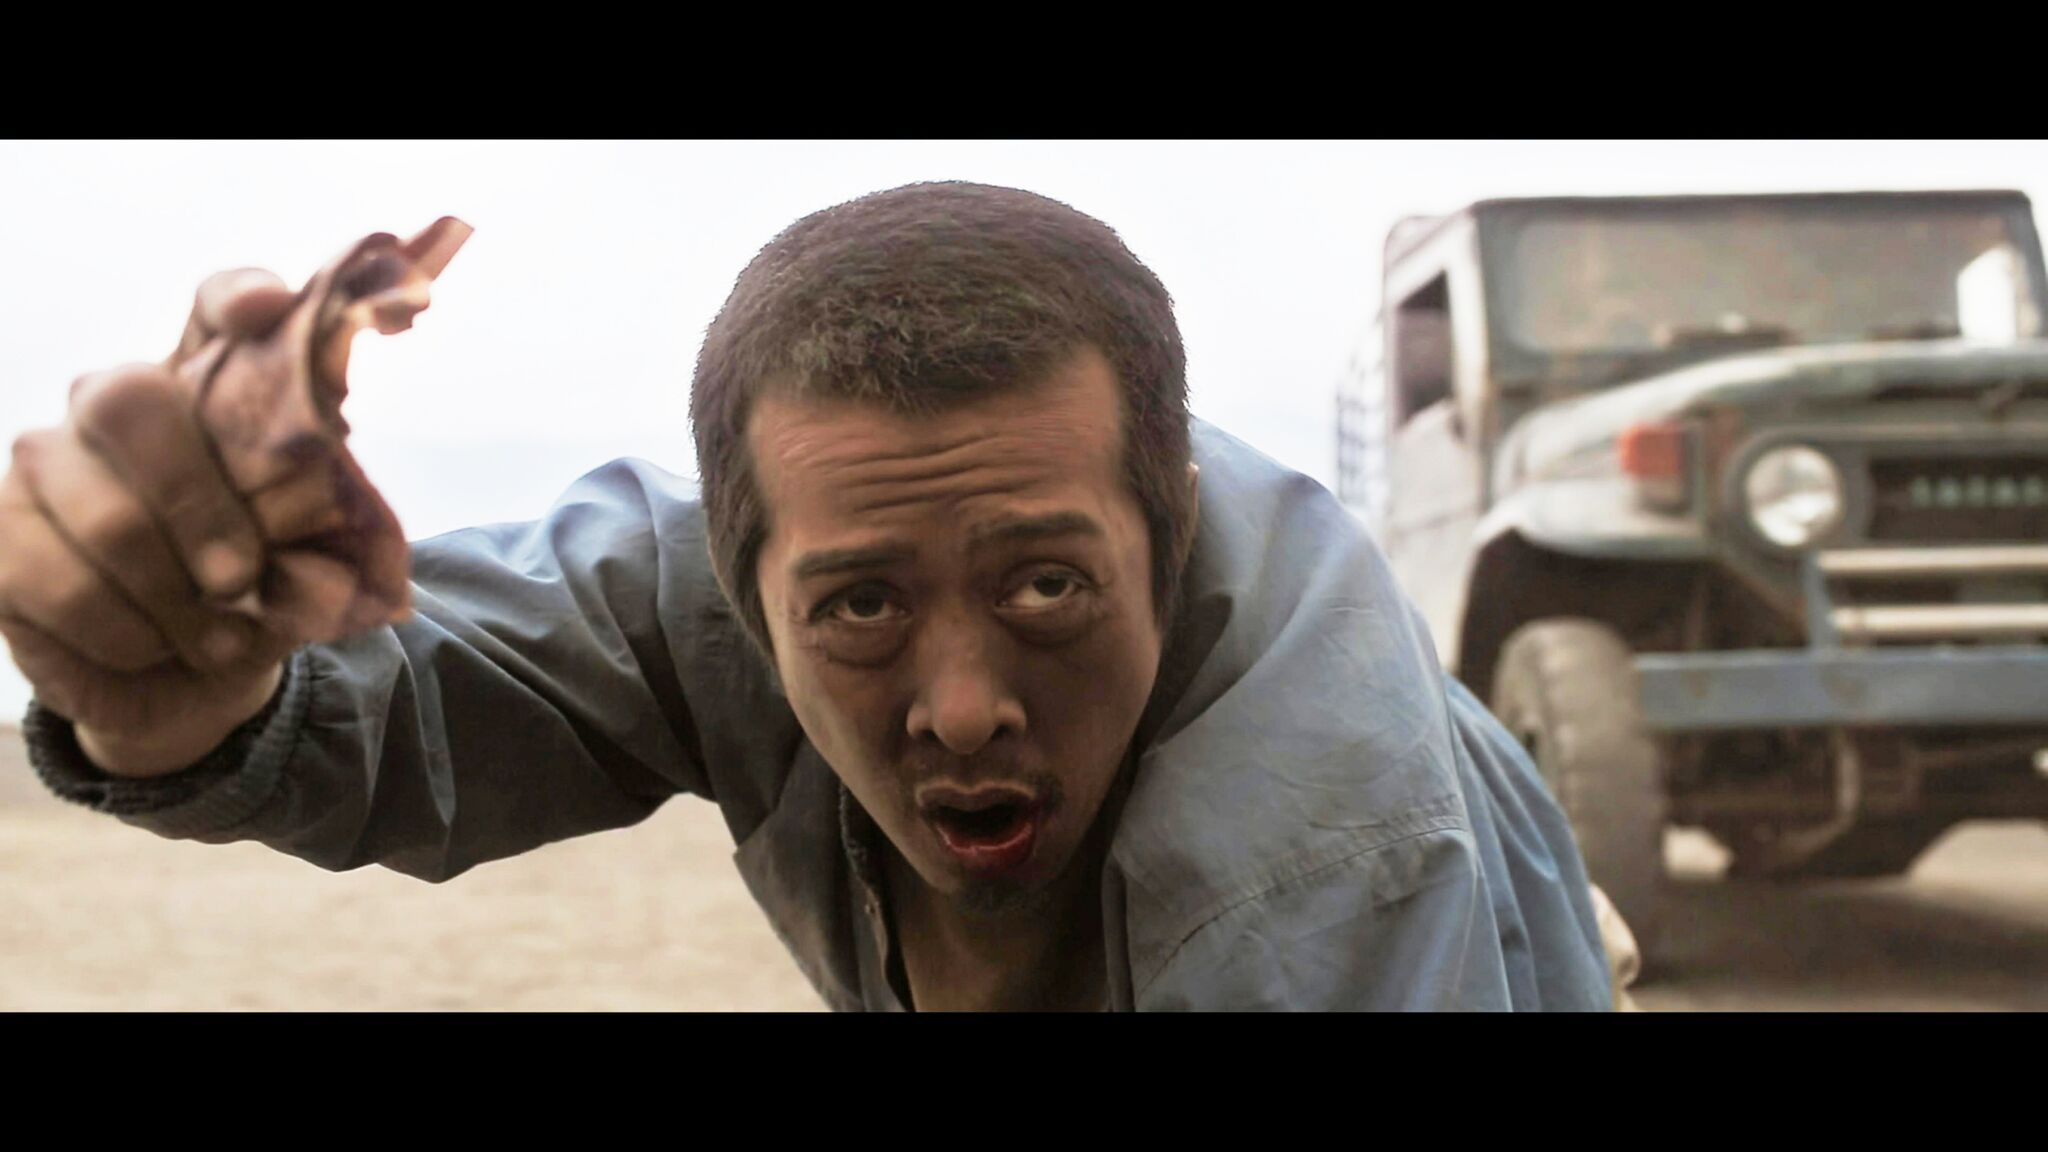 Harvan Agustriansyah / Indonesia / 2016 / Bahasa Indonesia / 17min   A driver recruits poor residents of a remote area to act as a mob in a demonstration where an altercation results in a violent spiral that tests his humanity.   Director: Harvan Agustriansyah born in Jakarta, Indonesia, in 1980. He studied directing at Jakarta Arts Institute. After graduated, he worked as assistant director in many Indonesian feature-length films production. As director he has been produced, wrote and directed several short film which participated at national and international film festival. Currently he in development his first feature length film.   Producer: Harvan Agustriansyah